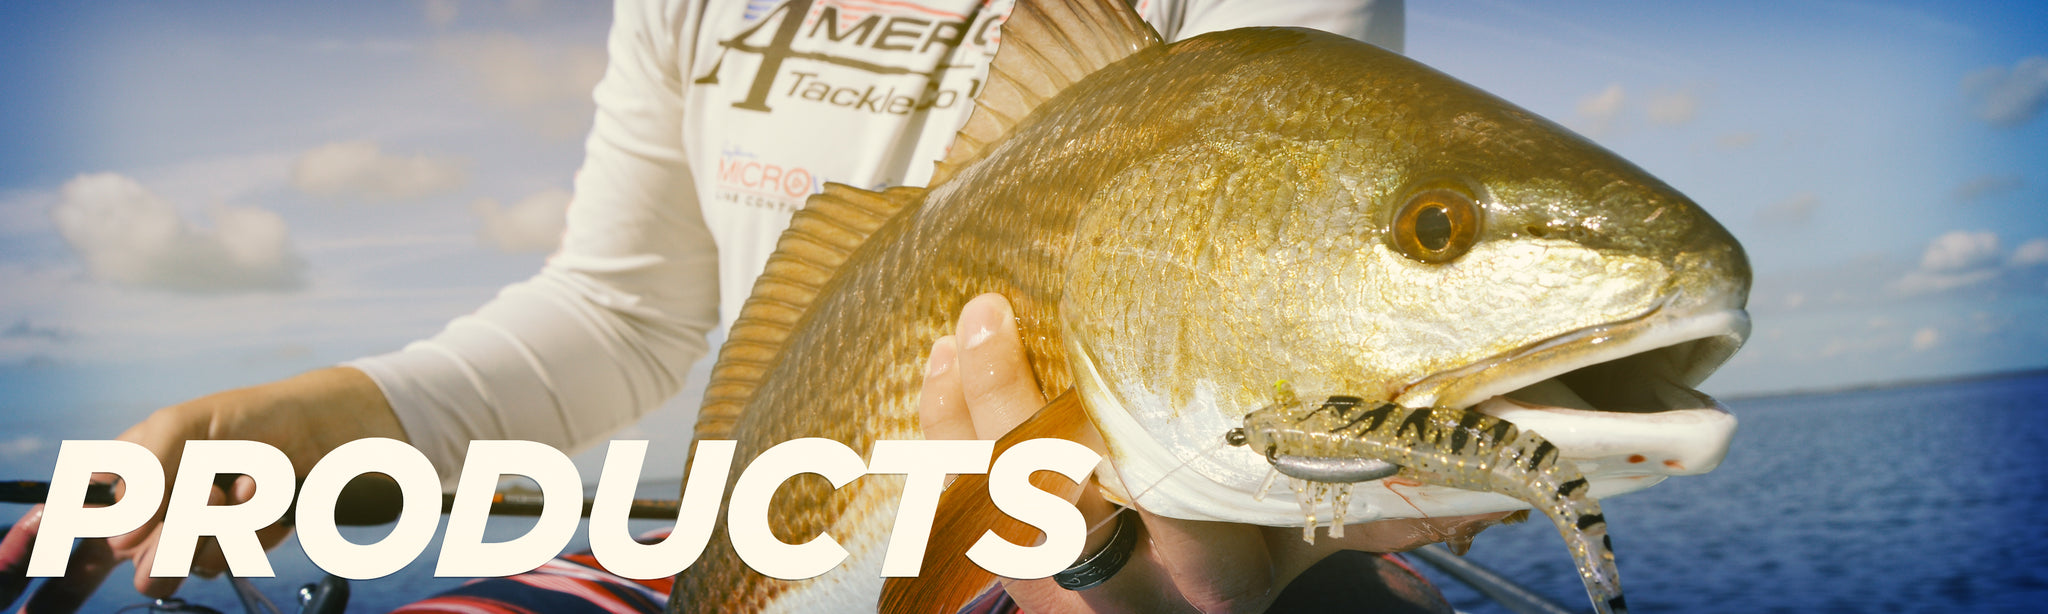 American Tackle Company Angler Products Page Oviedo